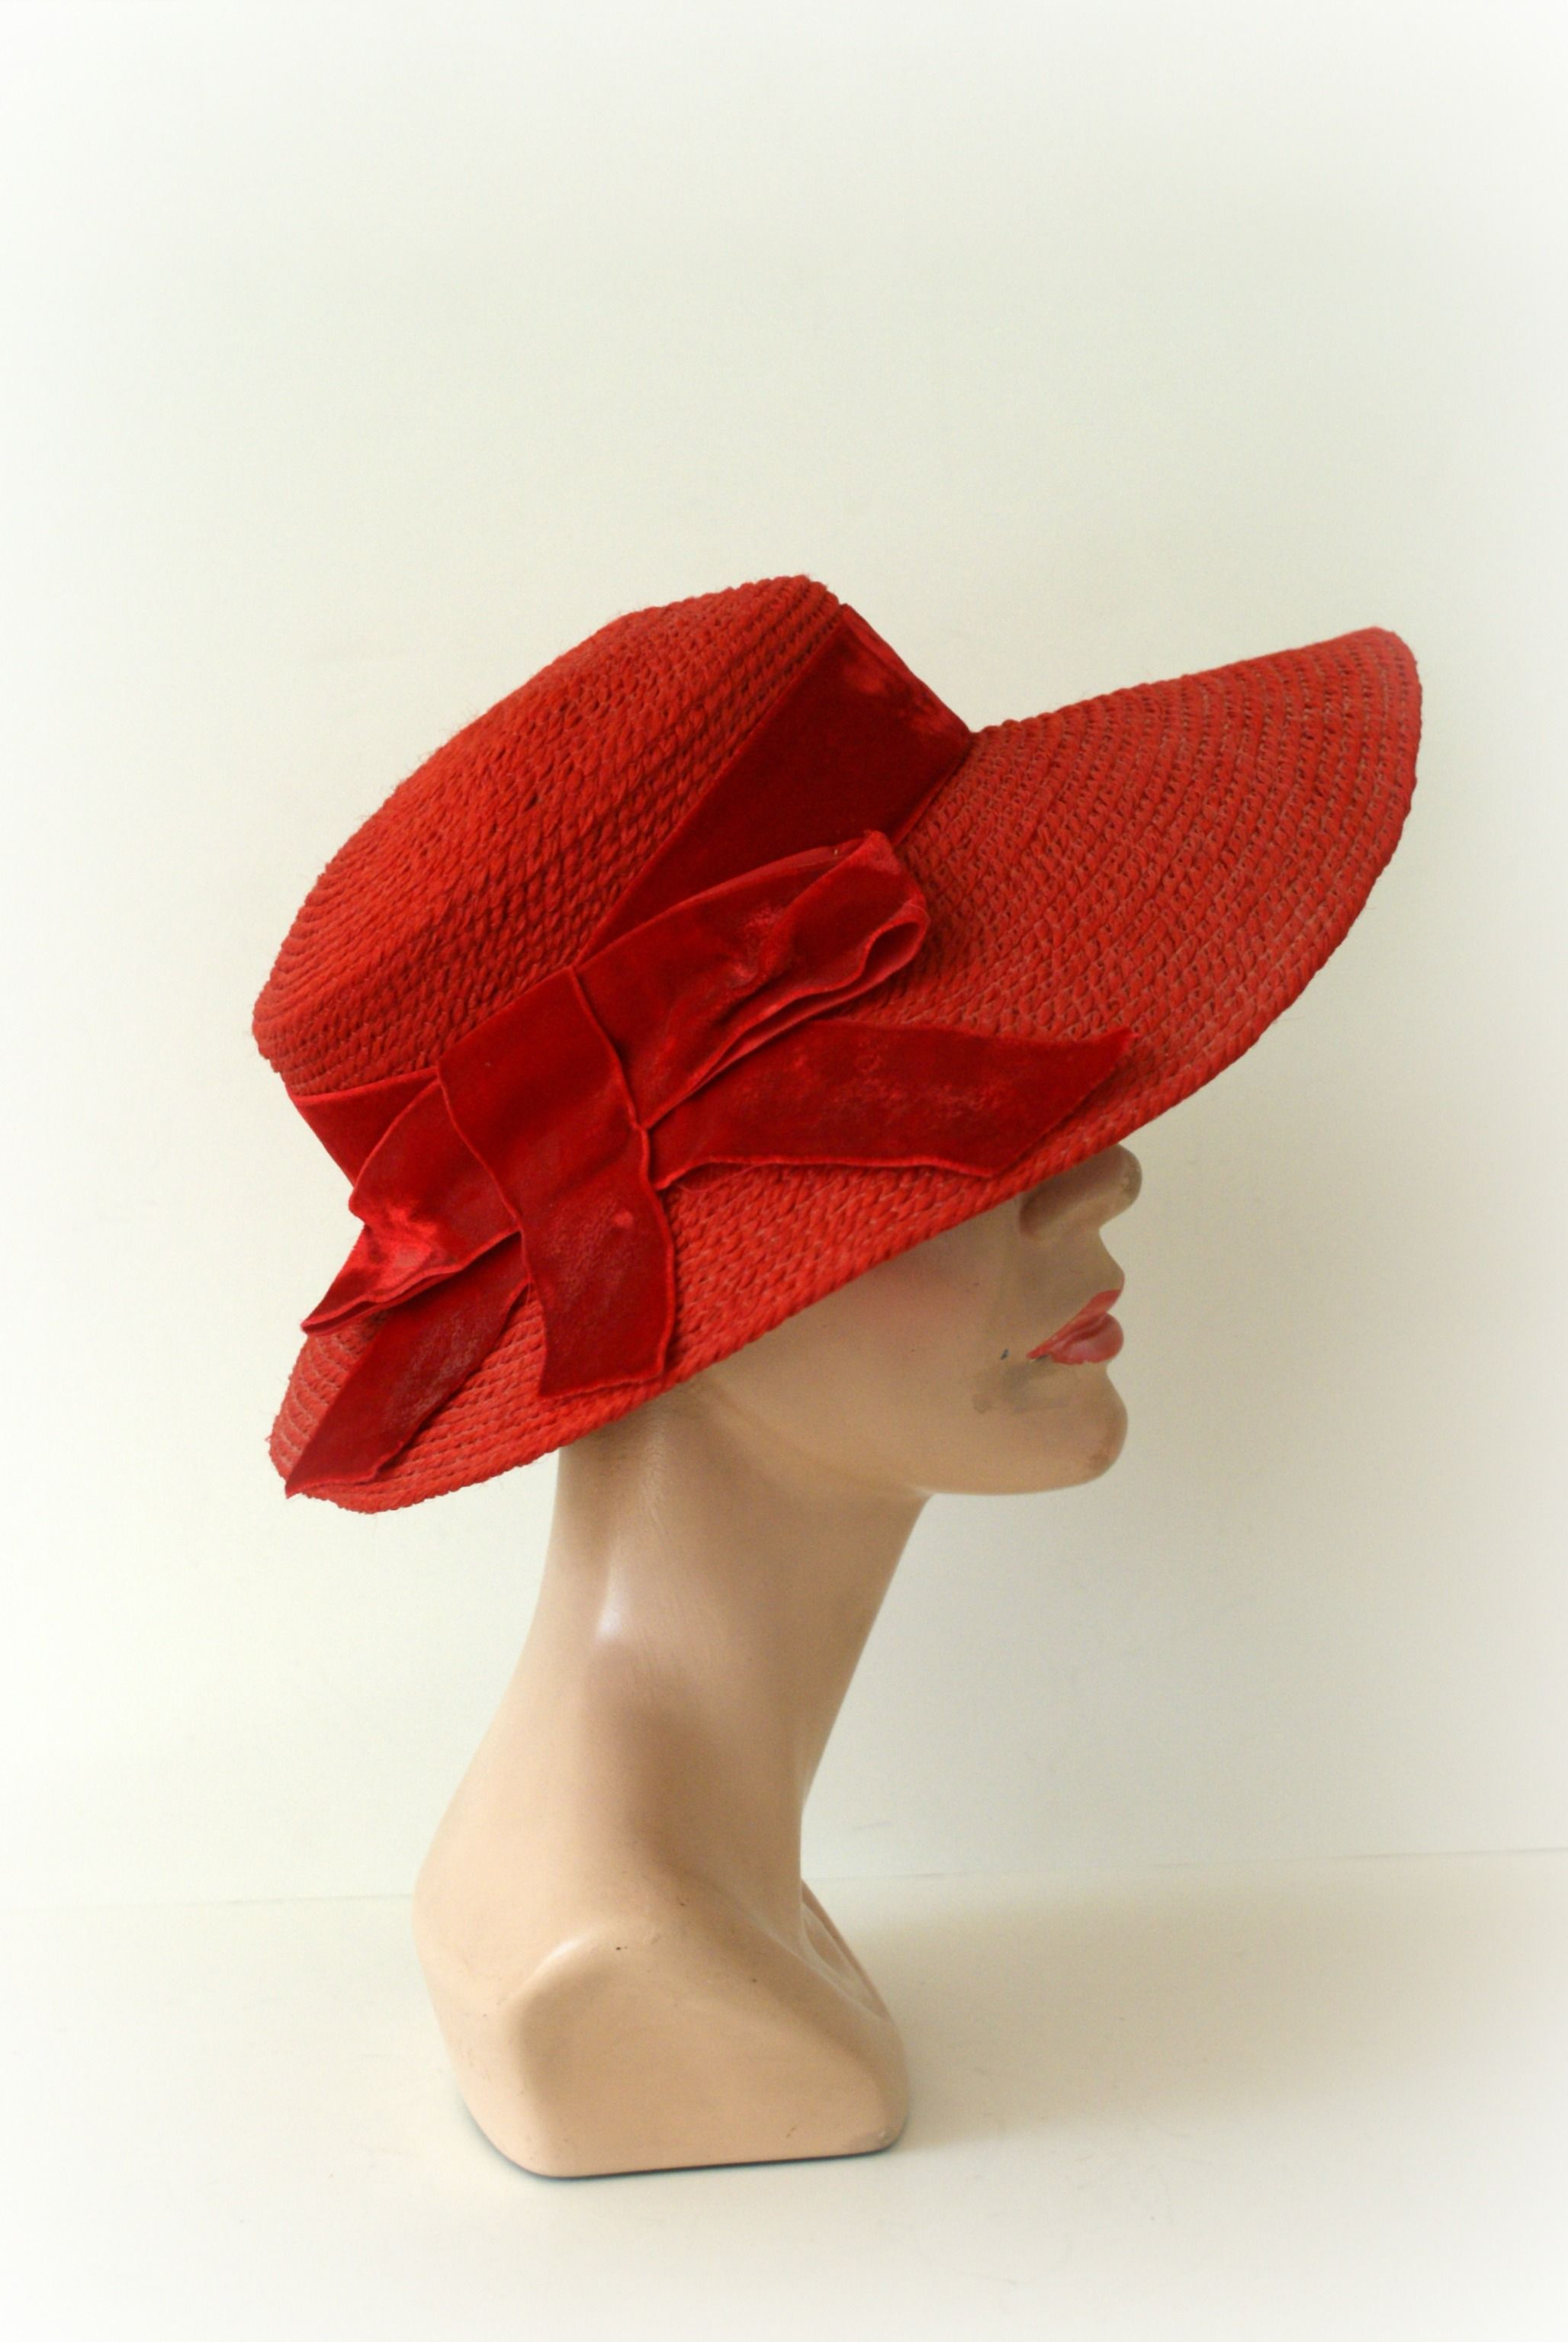 Vintage 1950s Wide Brim Hat - Red Sun Hat from Sweetbeefinds  1d645c0a3f25